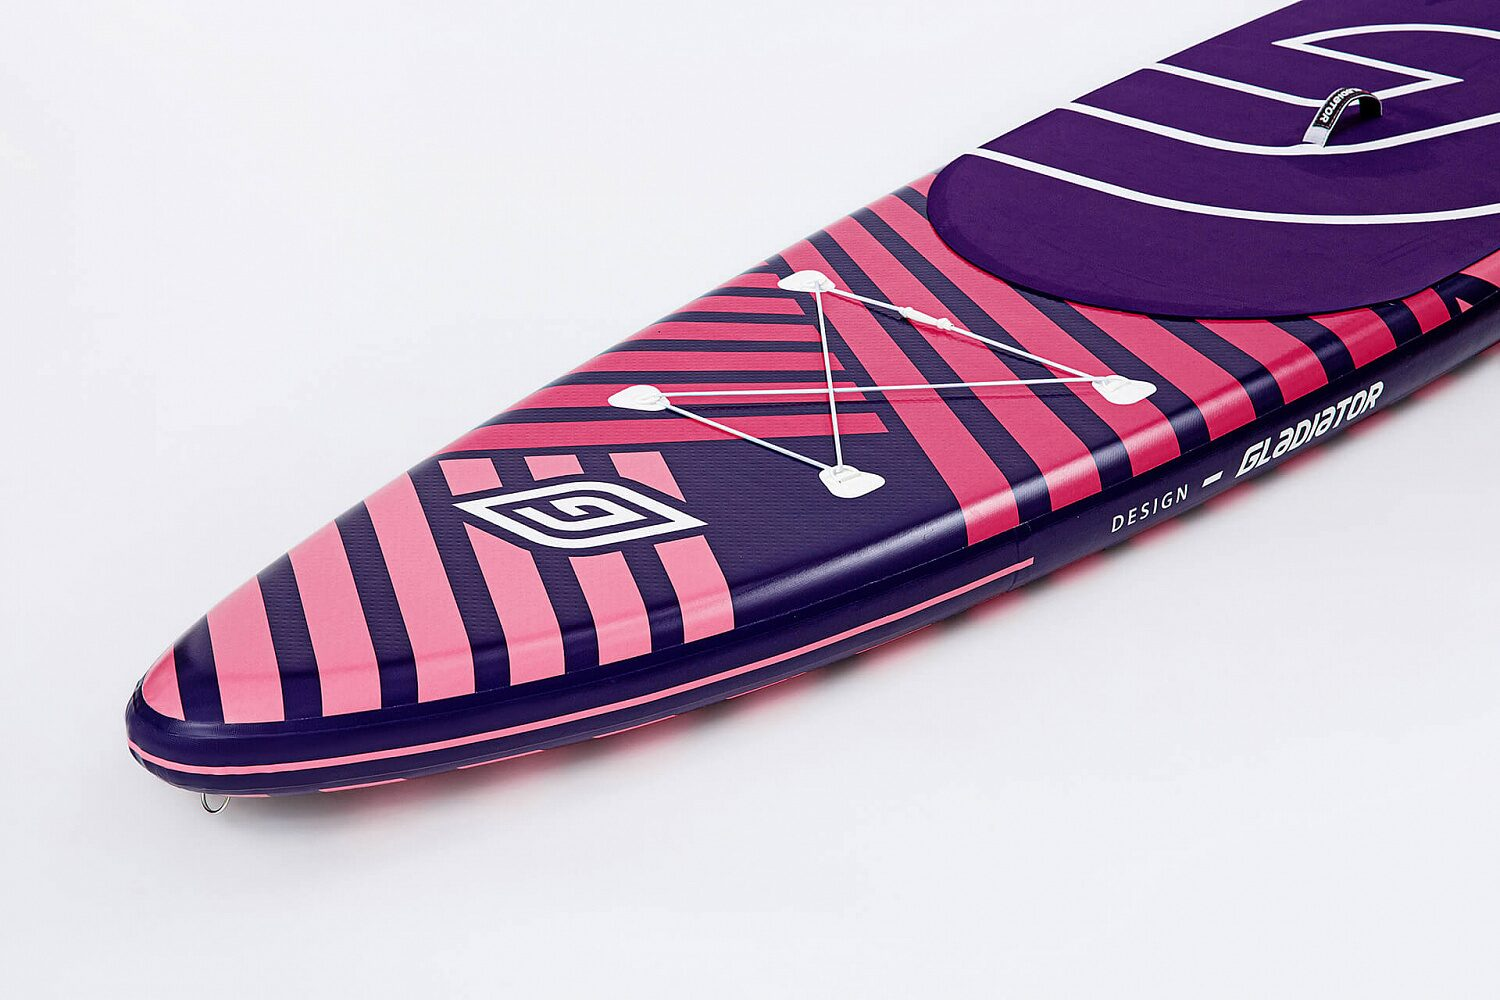 Доска SUP Board надувная (Сап Борд) Gladiator PRO 11.2 DSGN